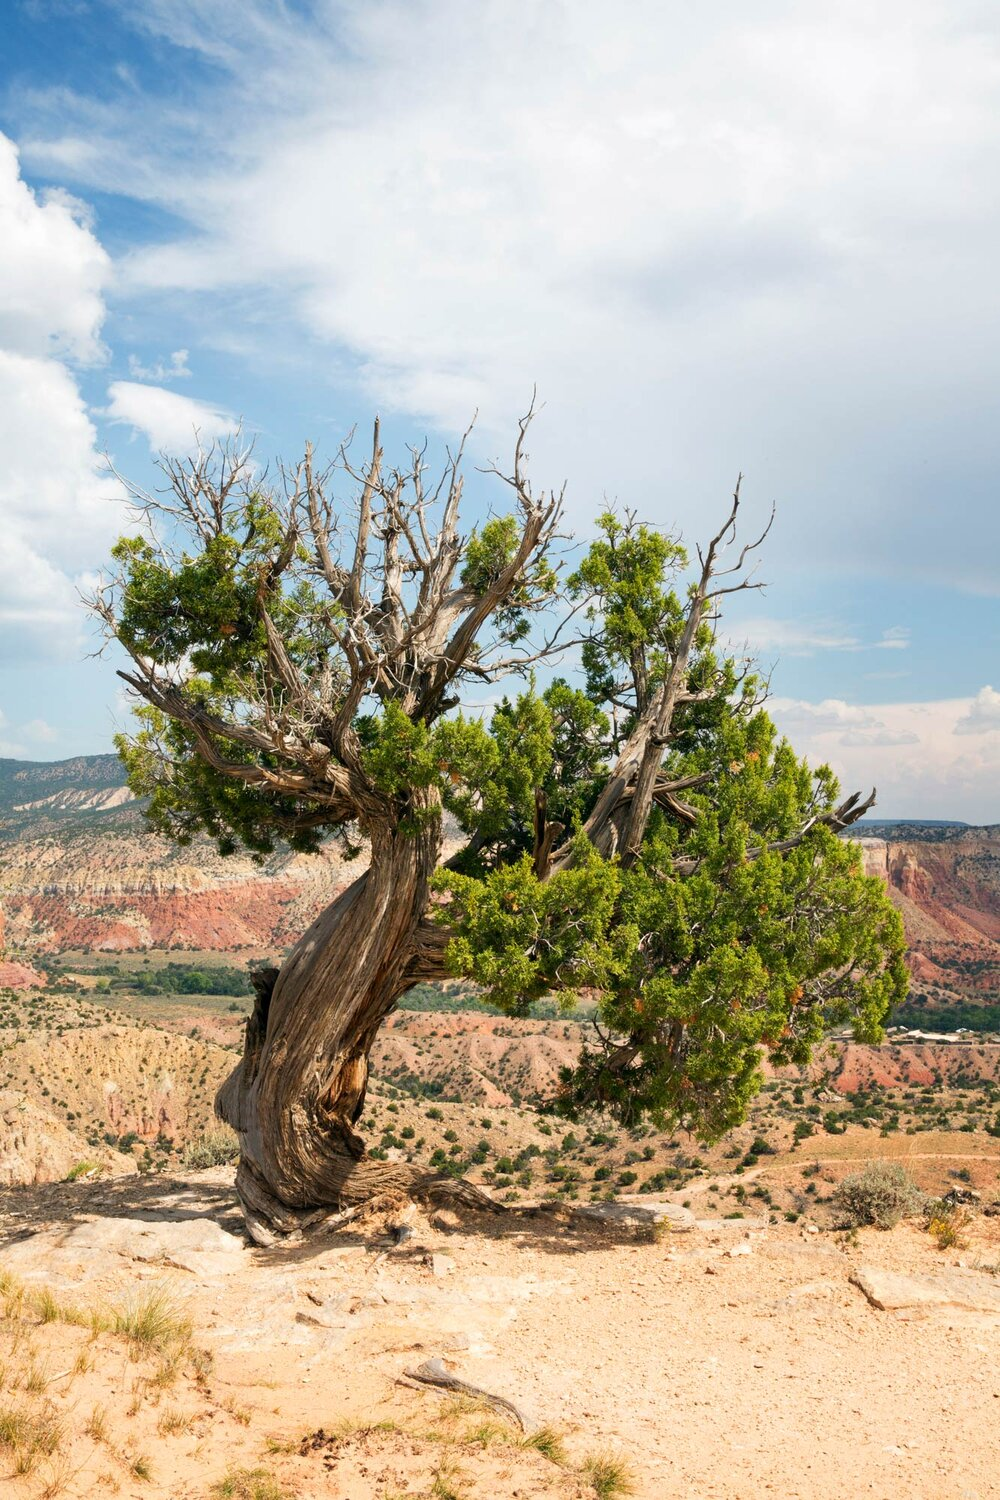 ghost-ranch-abiquiu-new-mexico.jpg